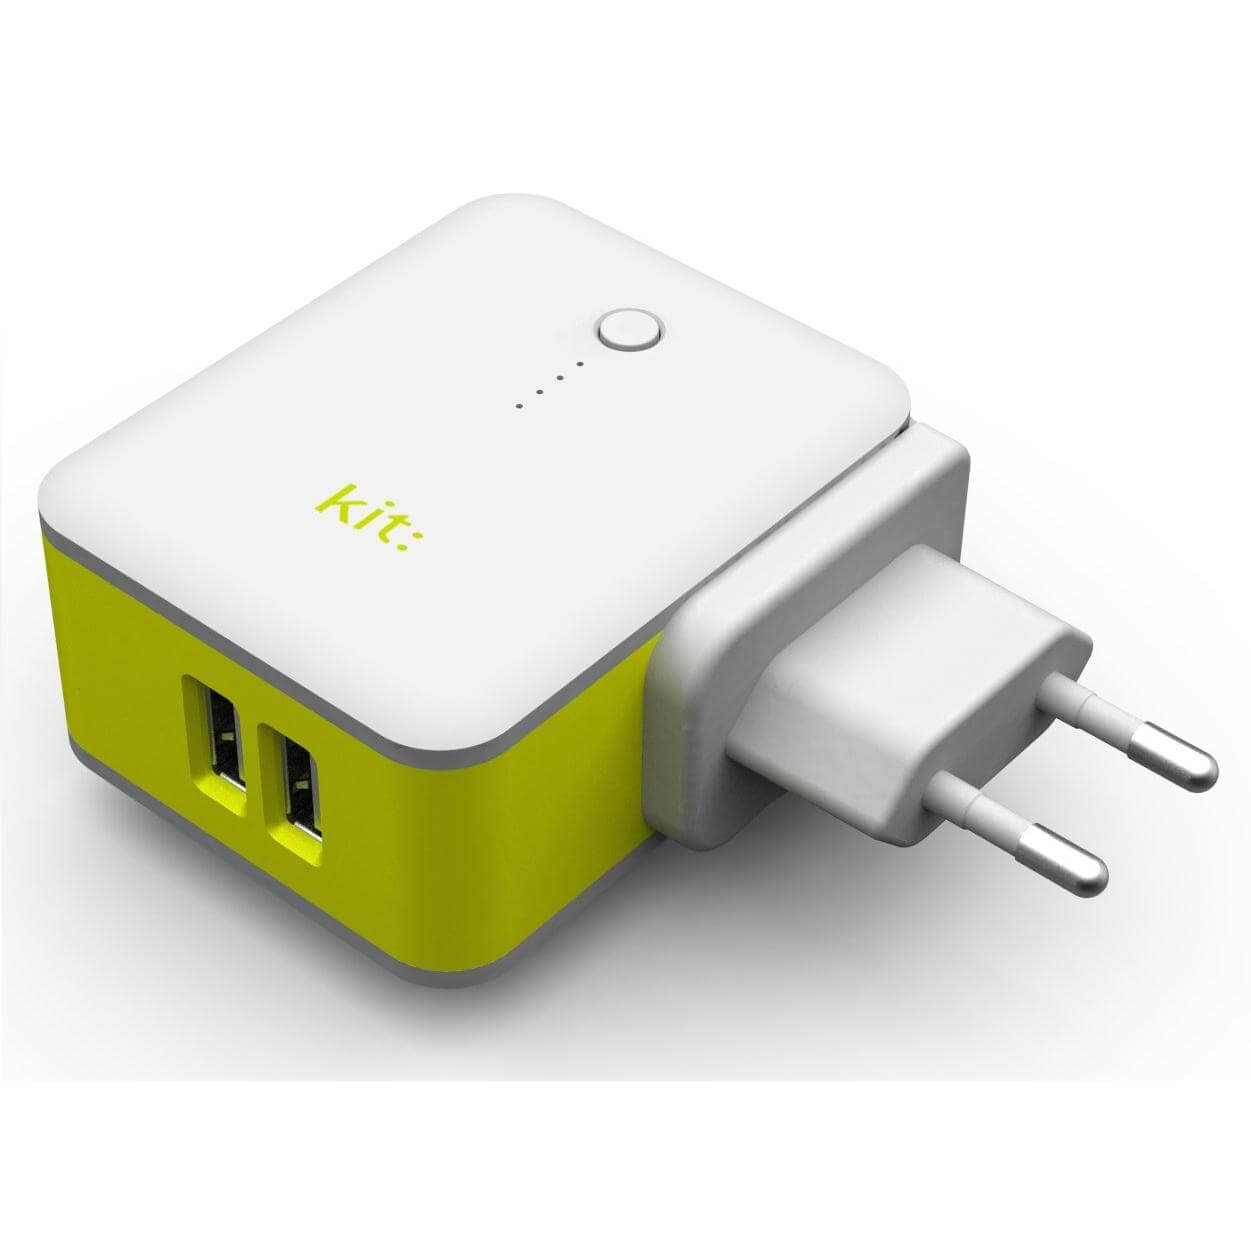 Kit 2in1 International Travel Charger with 3000mAh Powerbank (white)